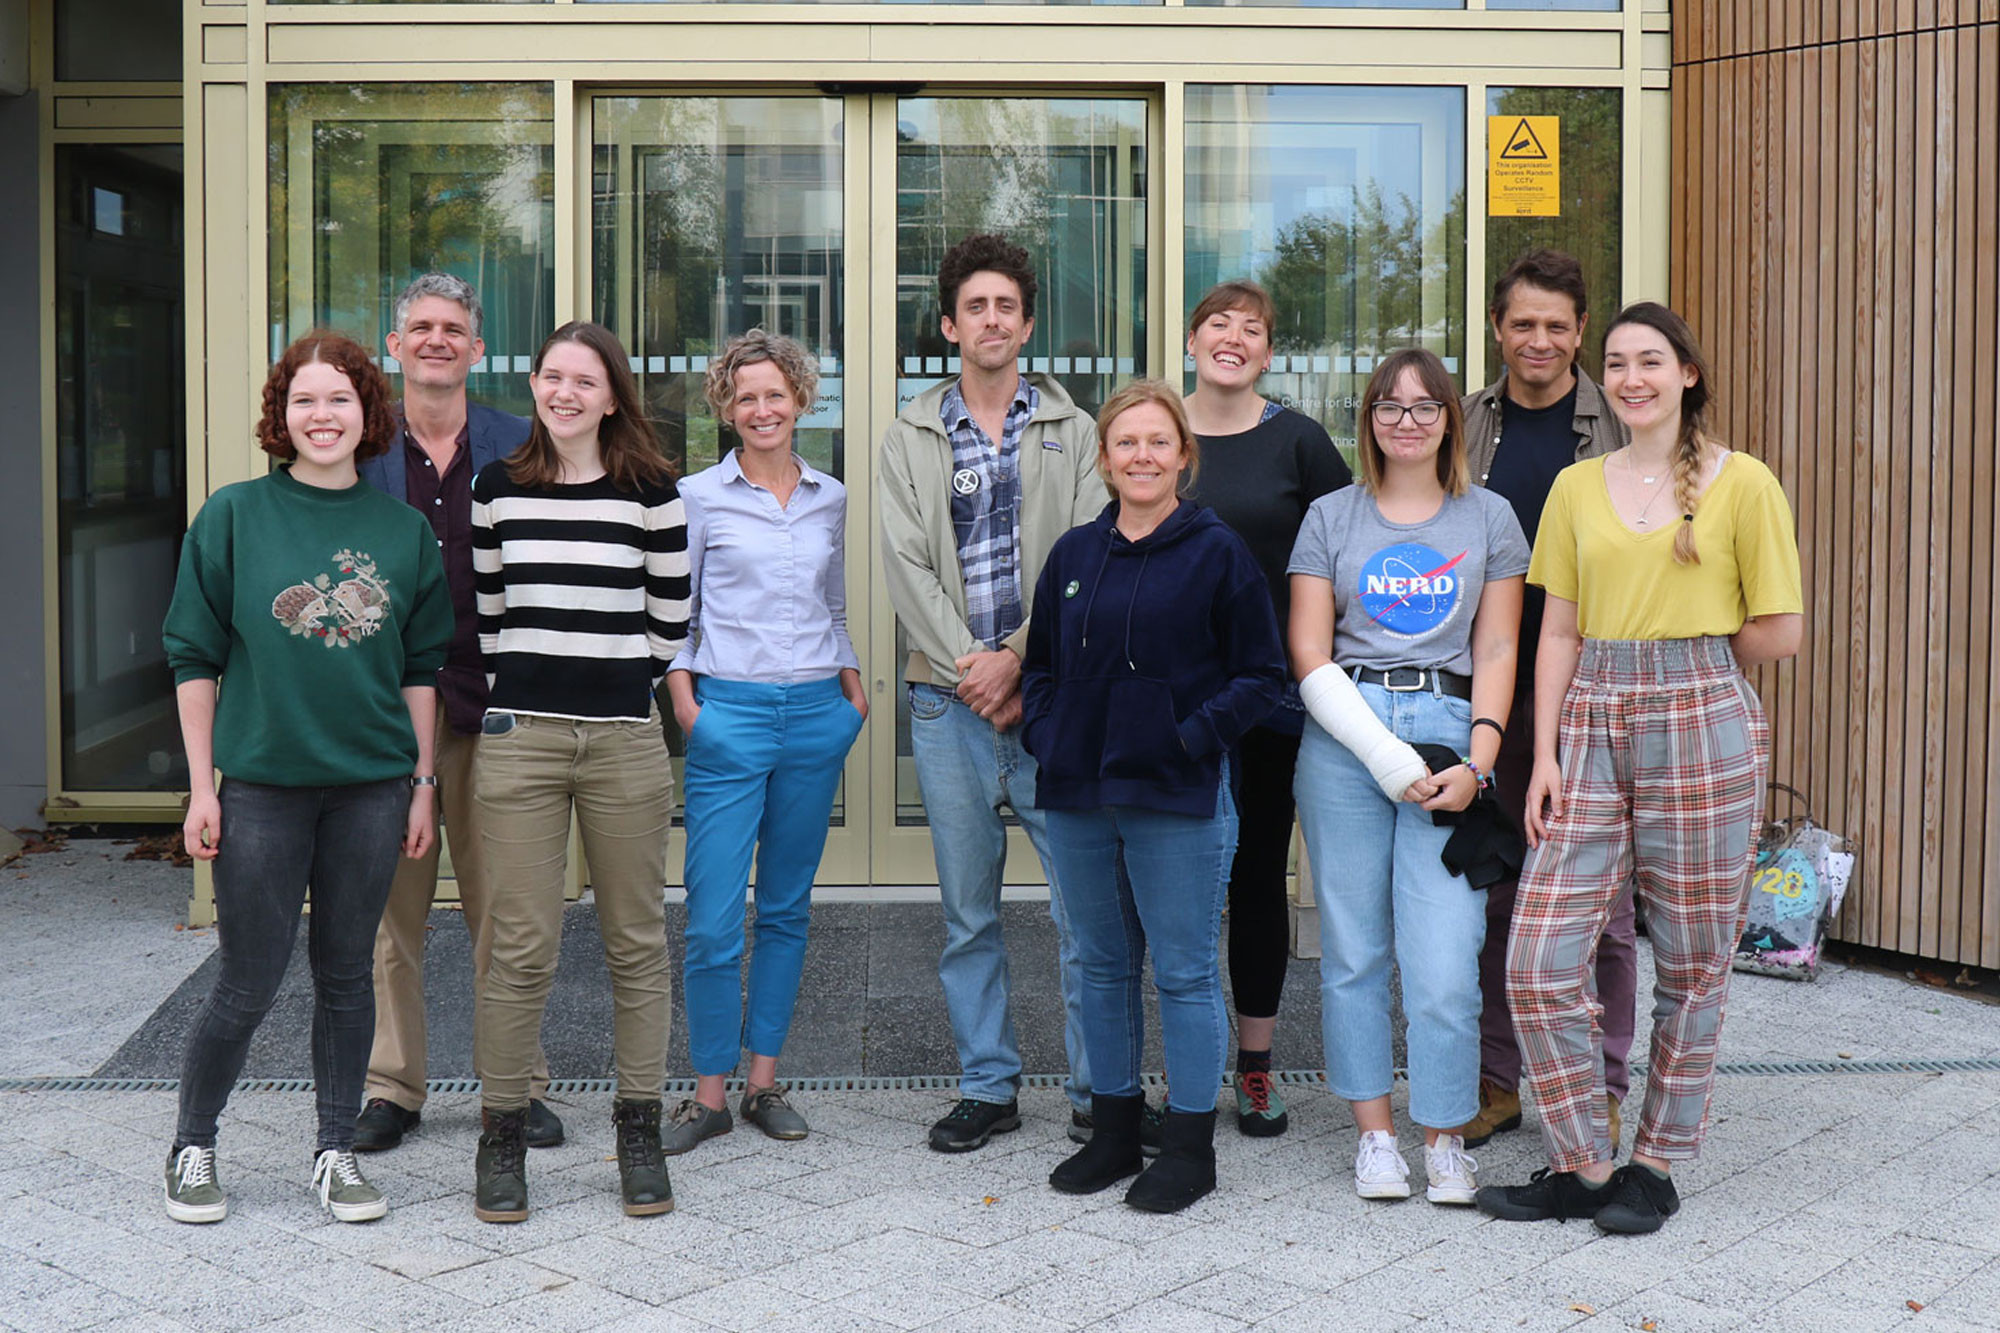 Members from the Sustainability Working Group